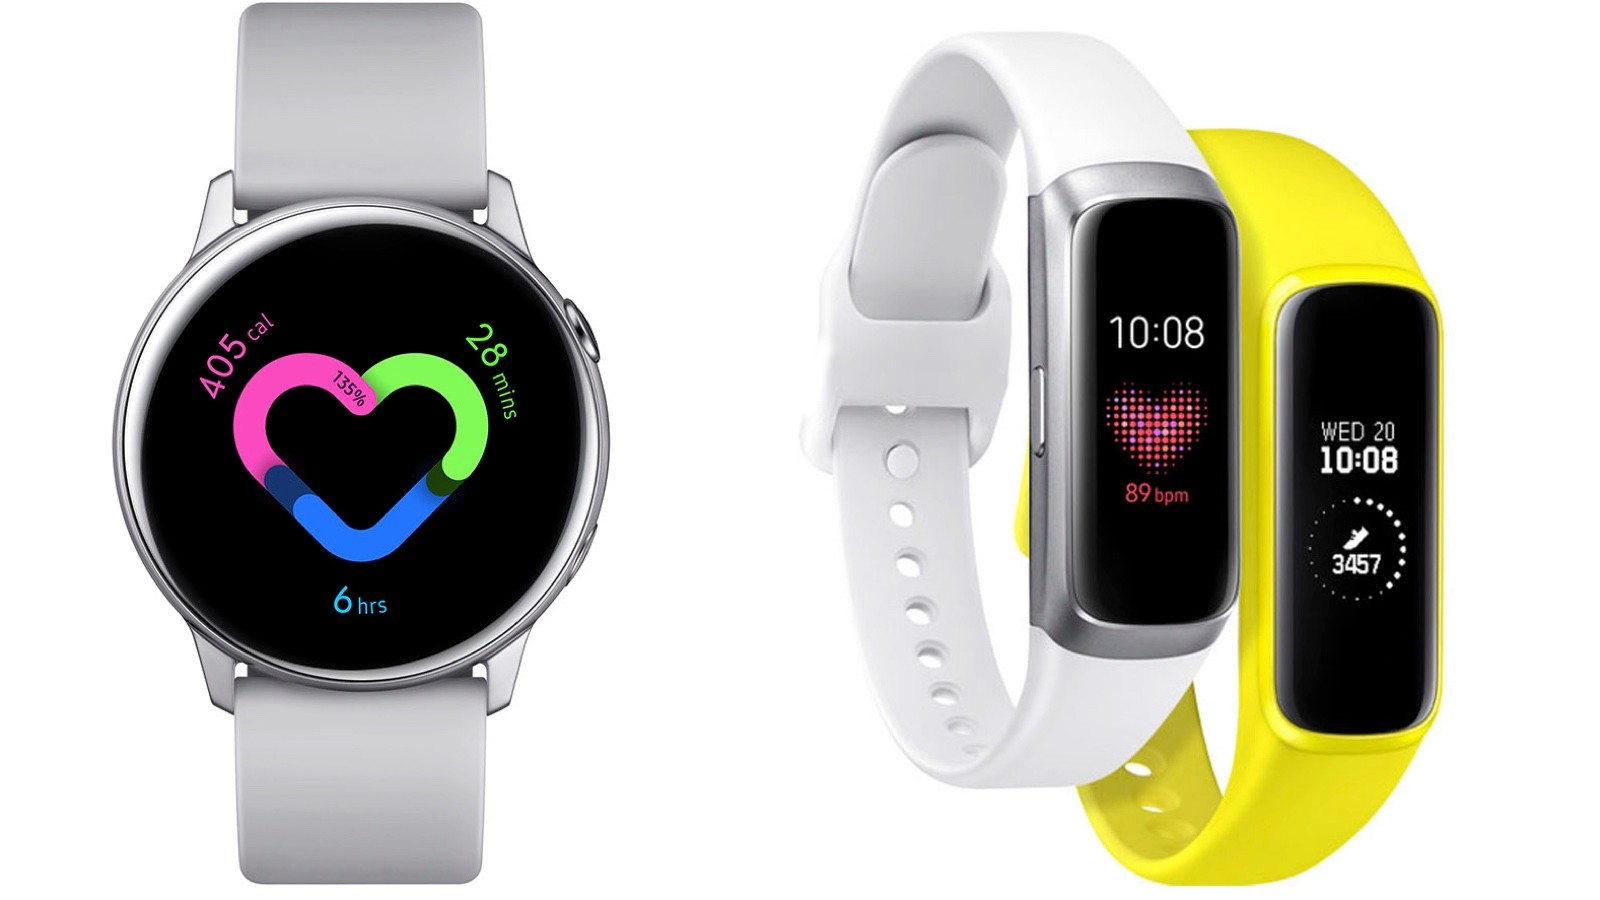 Samsung has just launched its latest round of wearables